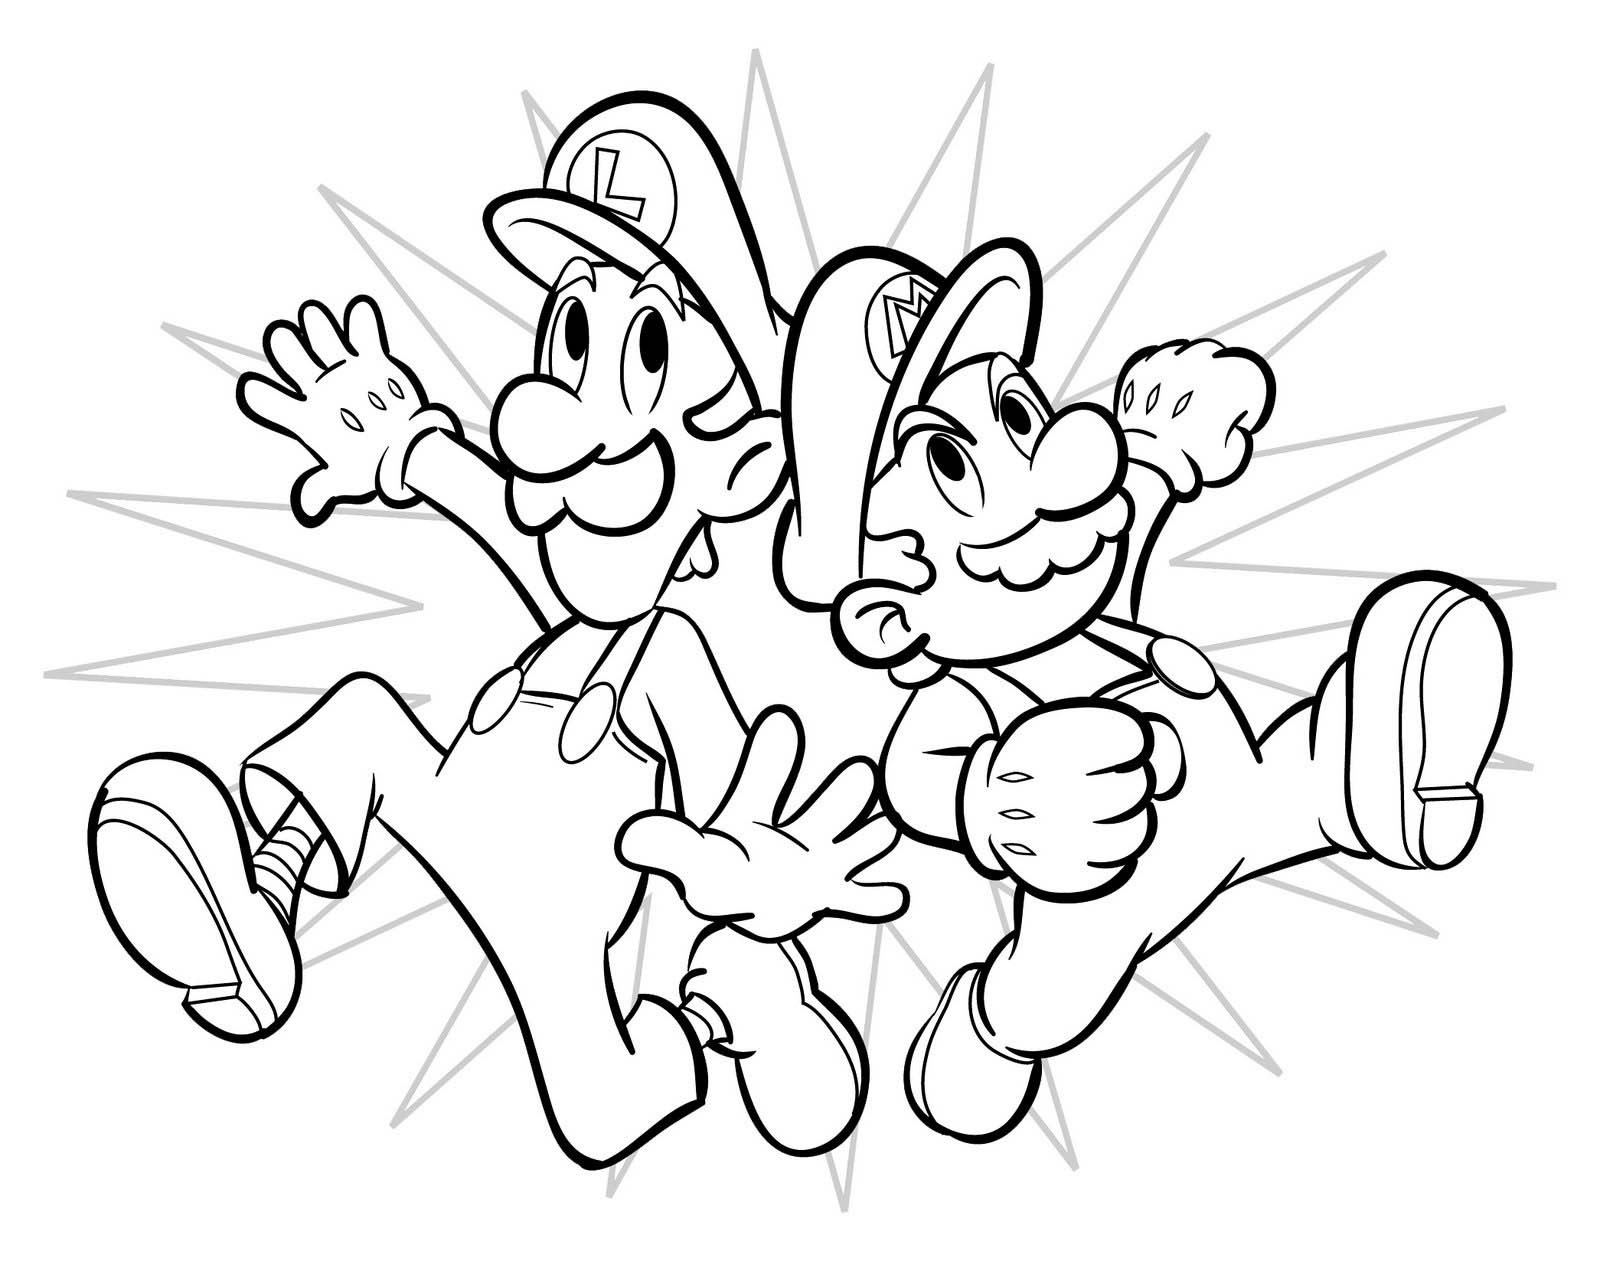 Coloring Pages Mega Blog Mario Bros Coloring Pages